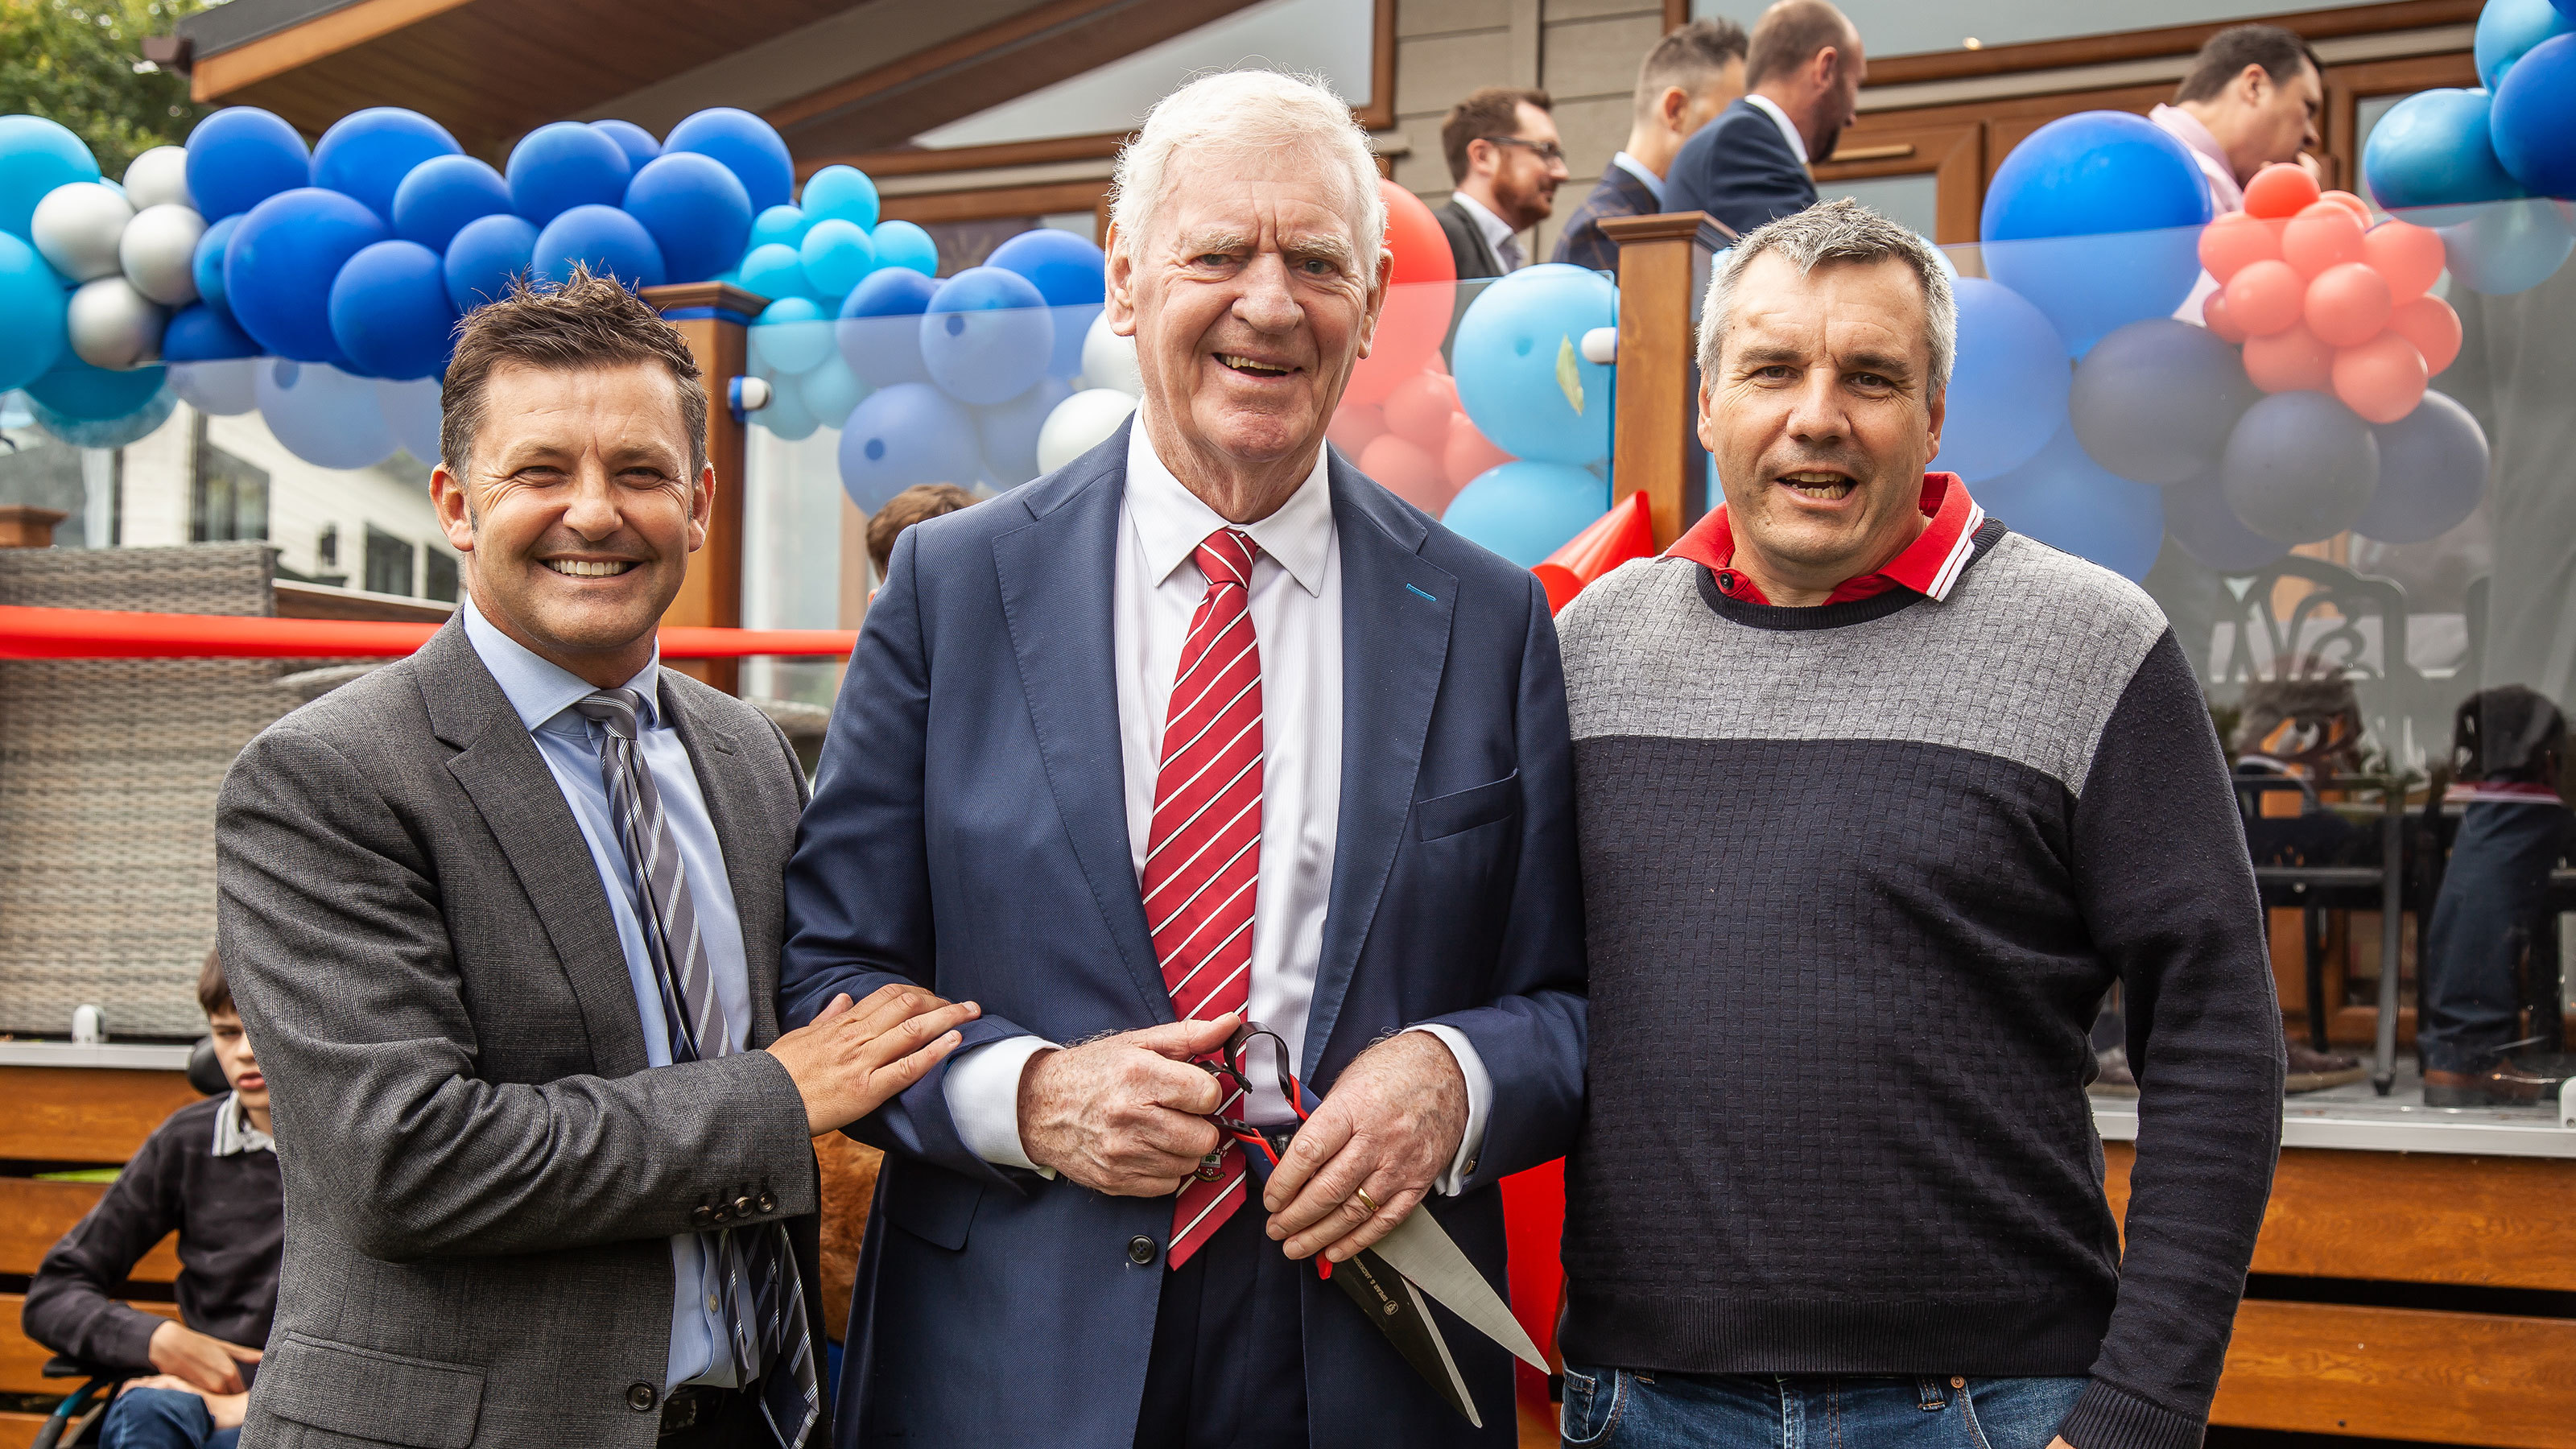 Nicky-Banger-CEO-at-The-Knights-Foundation-with-Lawrie-Mcmenemy-CBE-at-the-official-opening